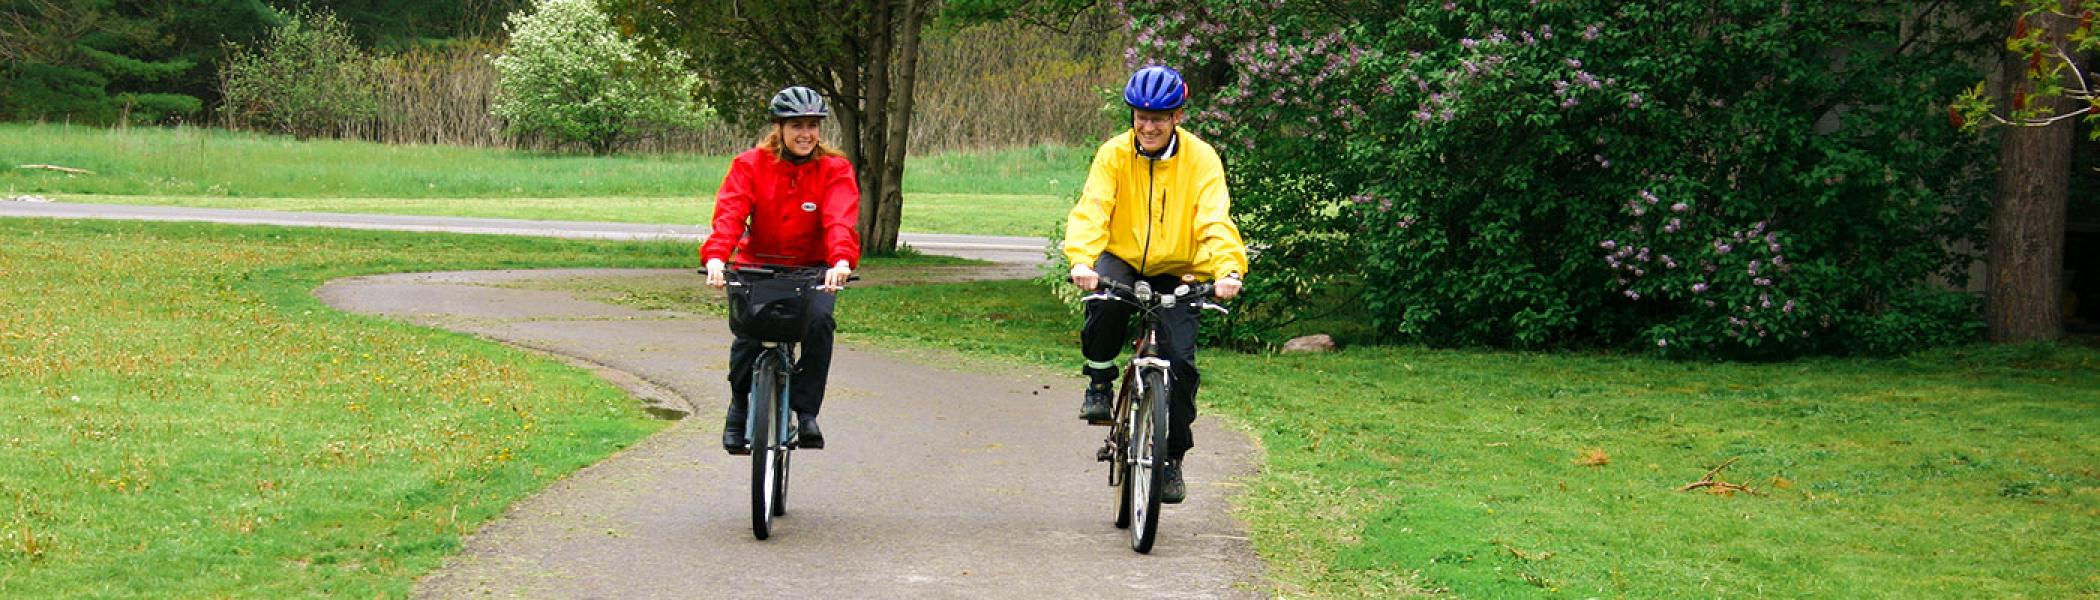 Two people biking on a path towards the camera